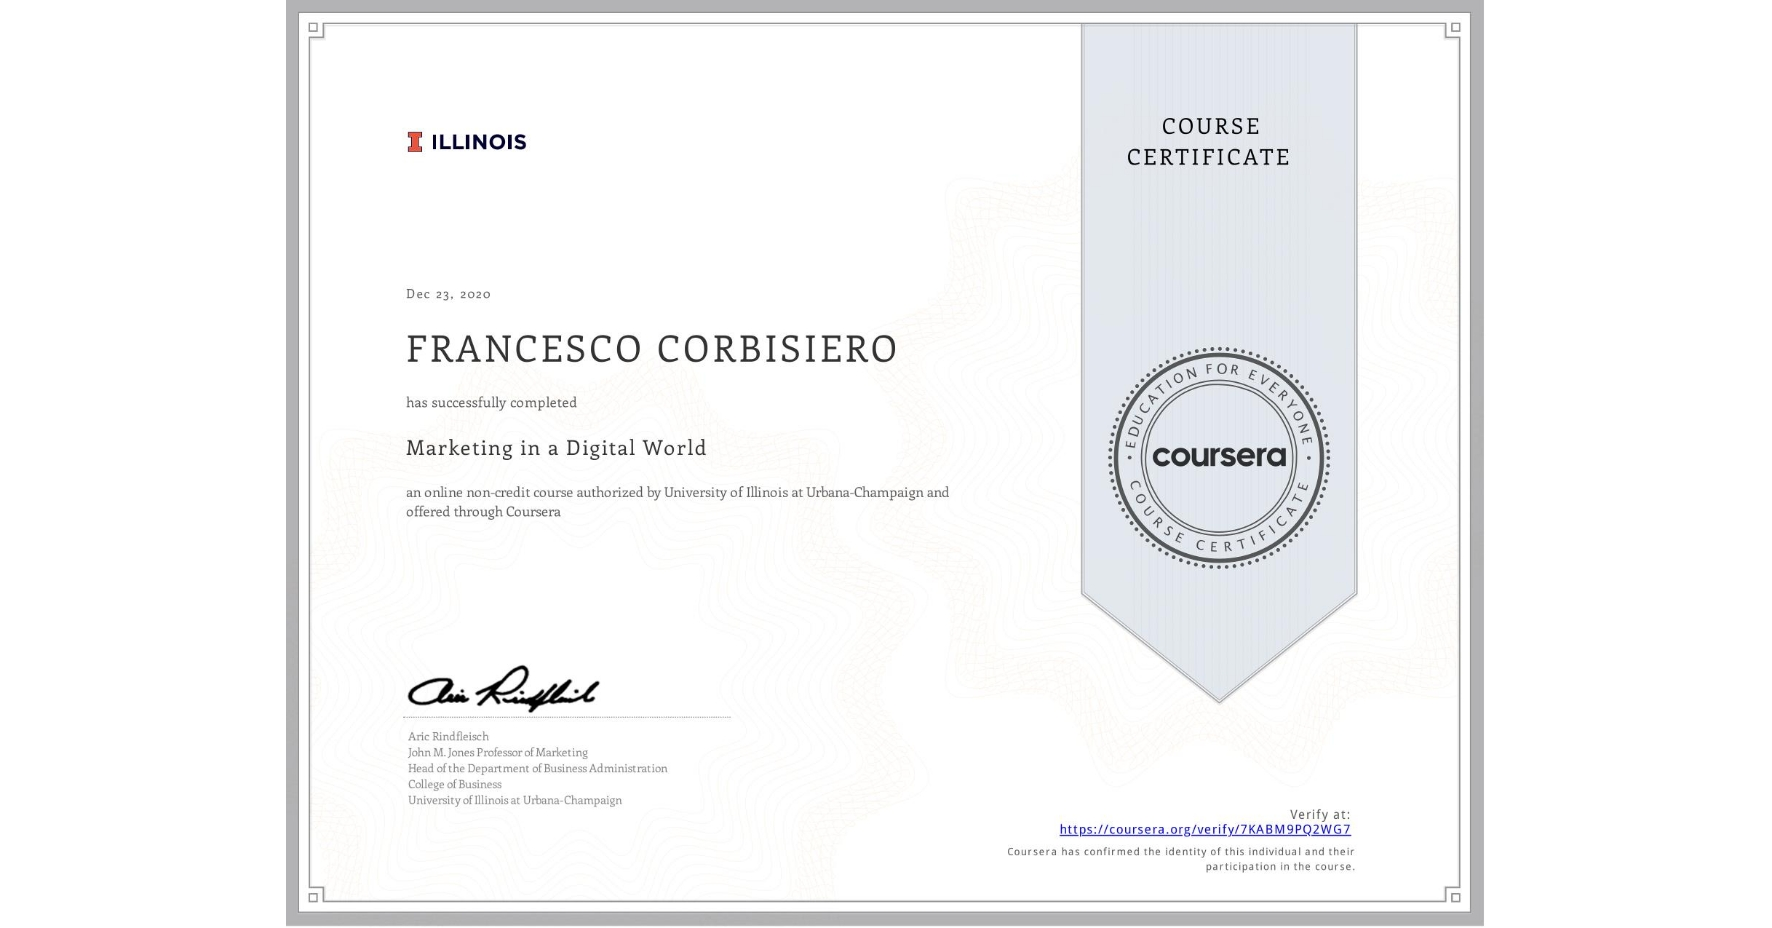 View certificate for FRANCESCO CORBISIERO, Marketing in a Digital World, an online non-credit course authorized by University of Illinois at Urbana-Champaign and offered through Coursera